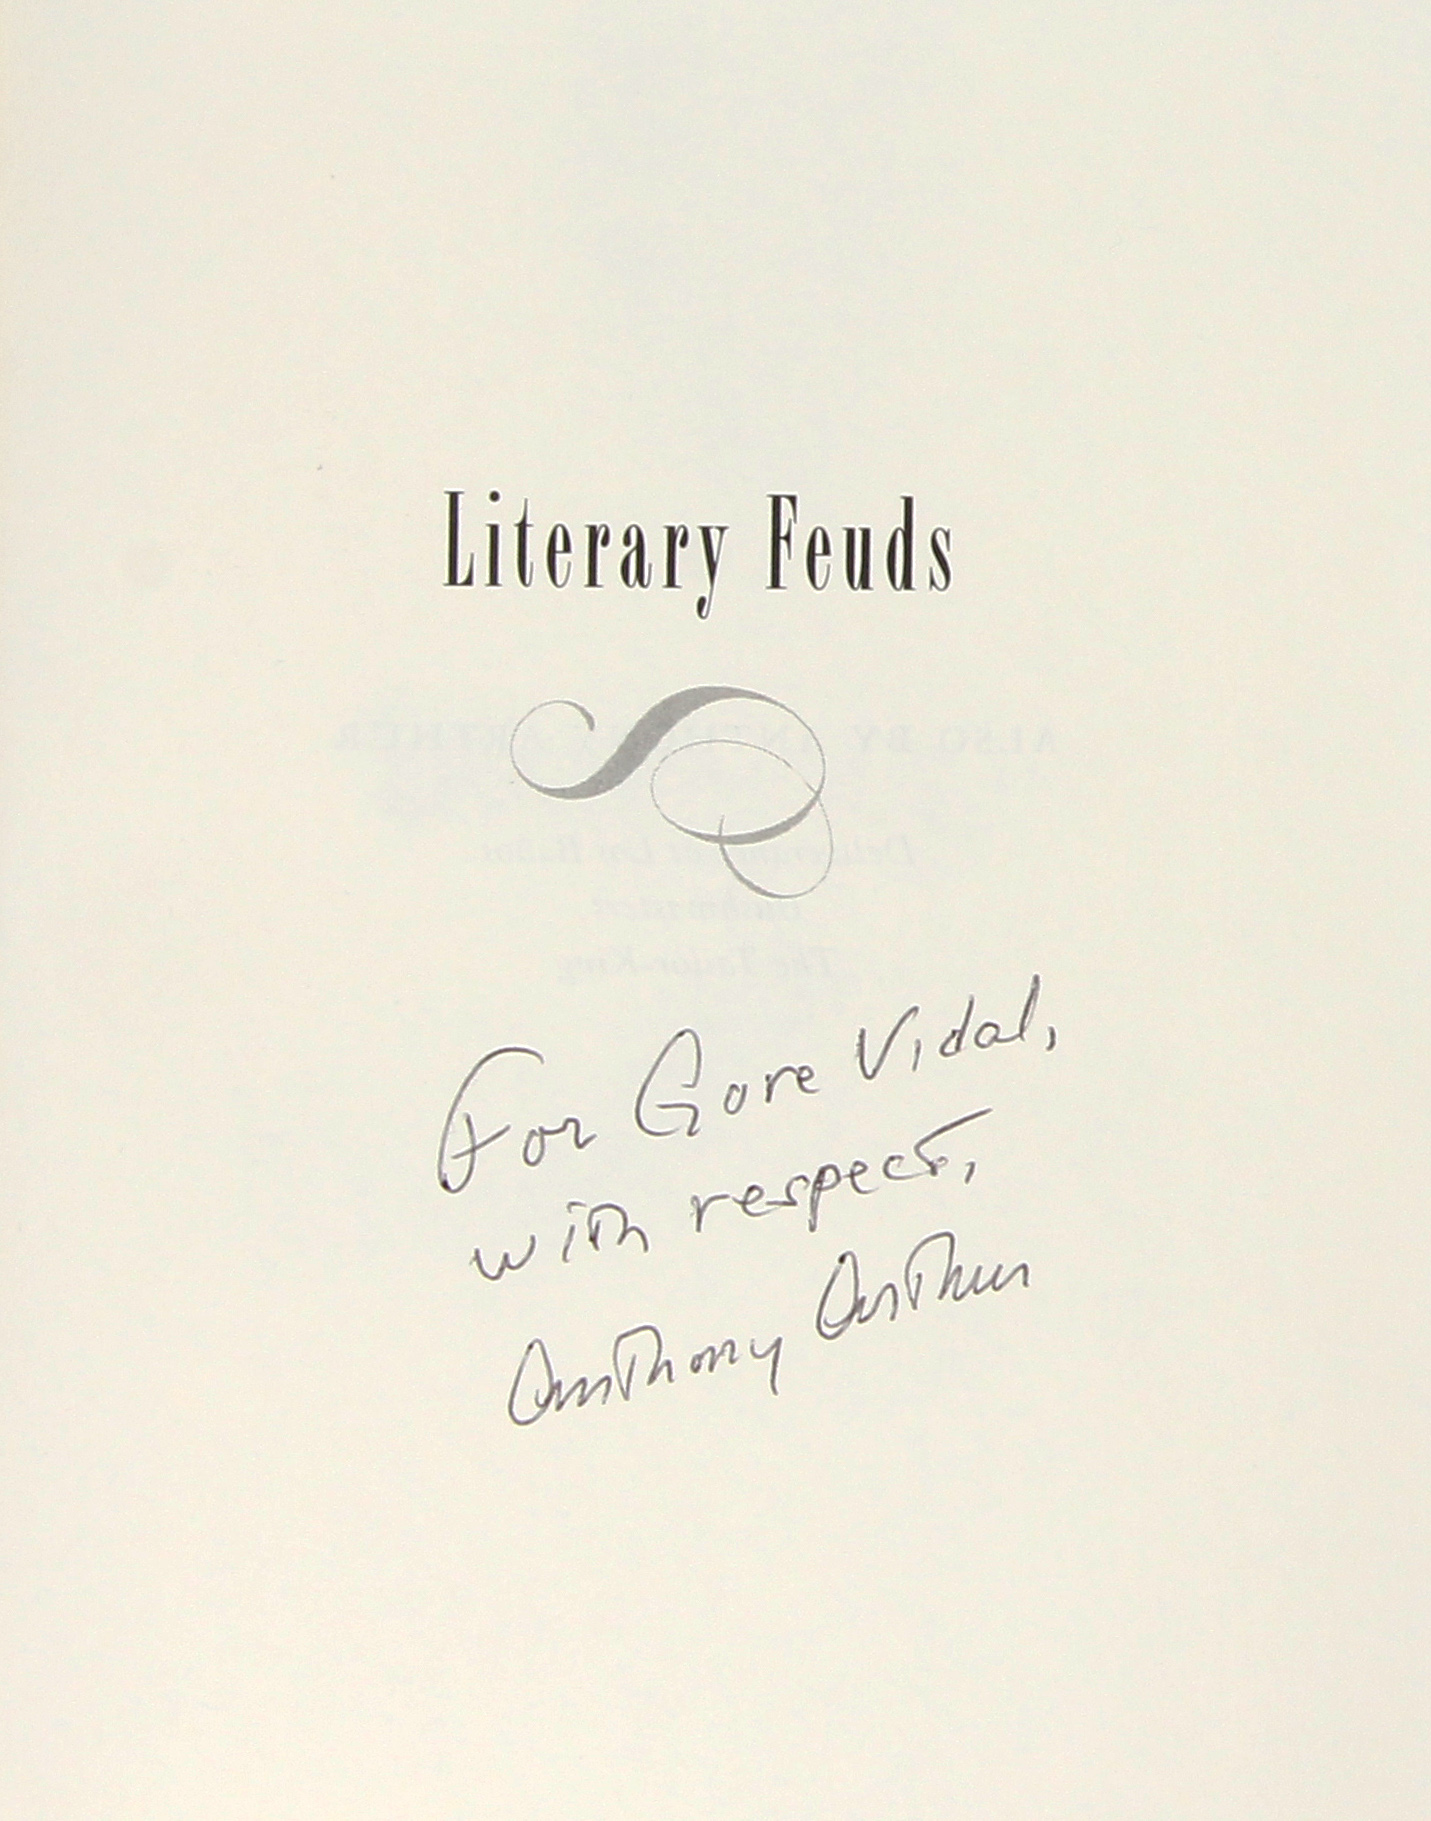 Literary Feuds Signed To Gore Vidal